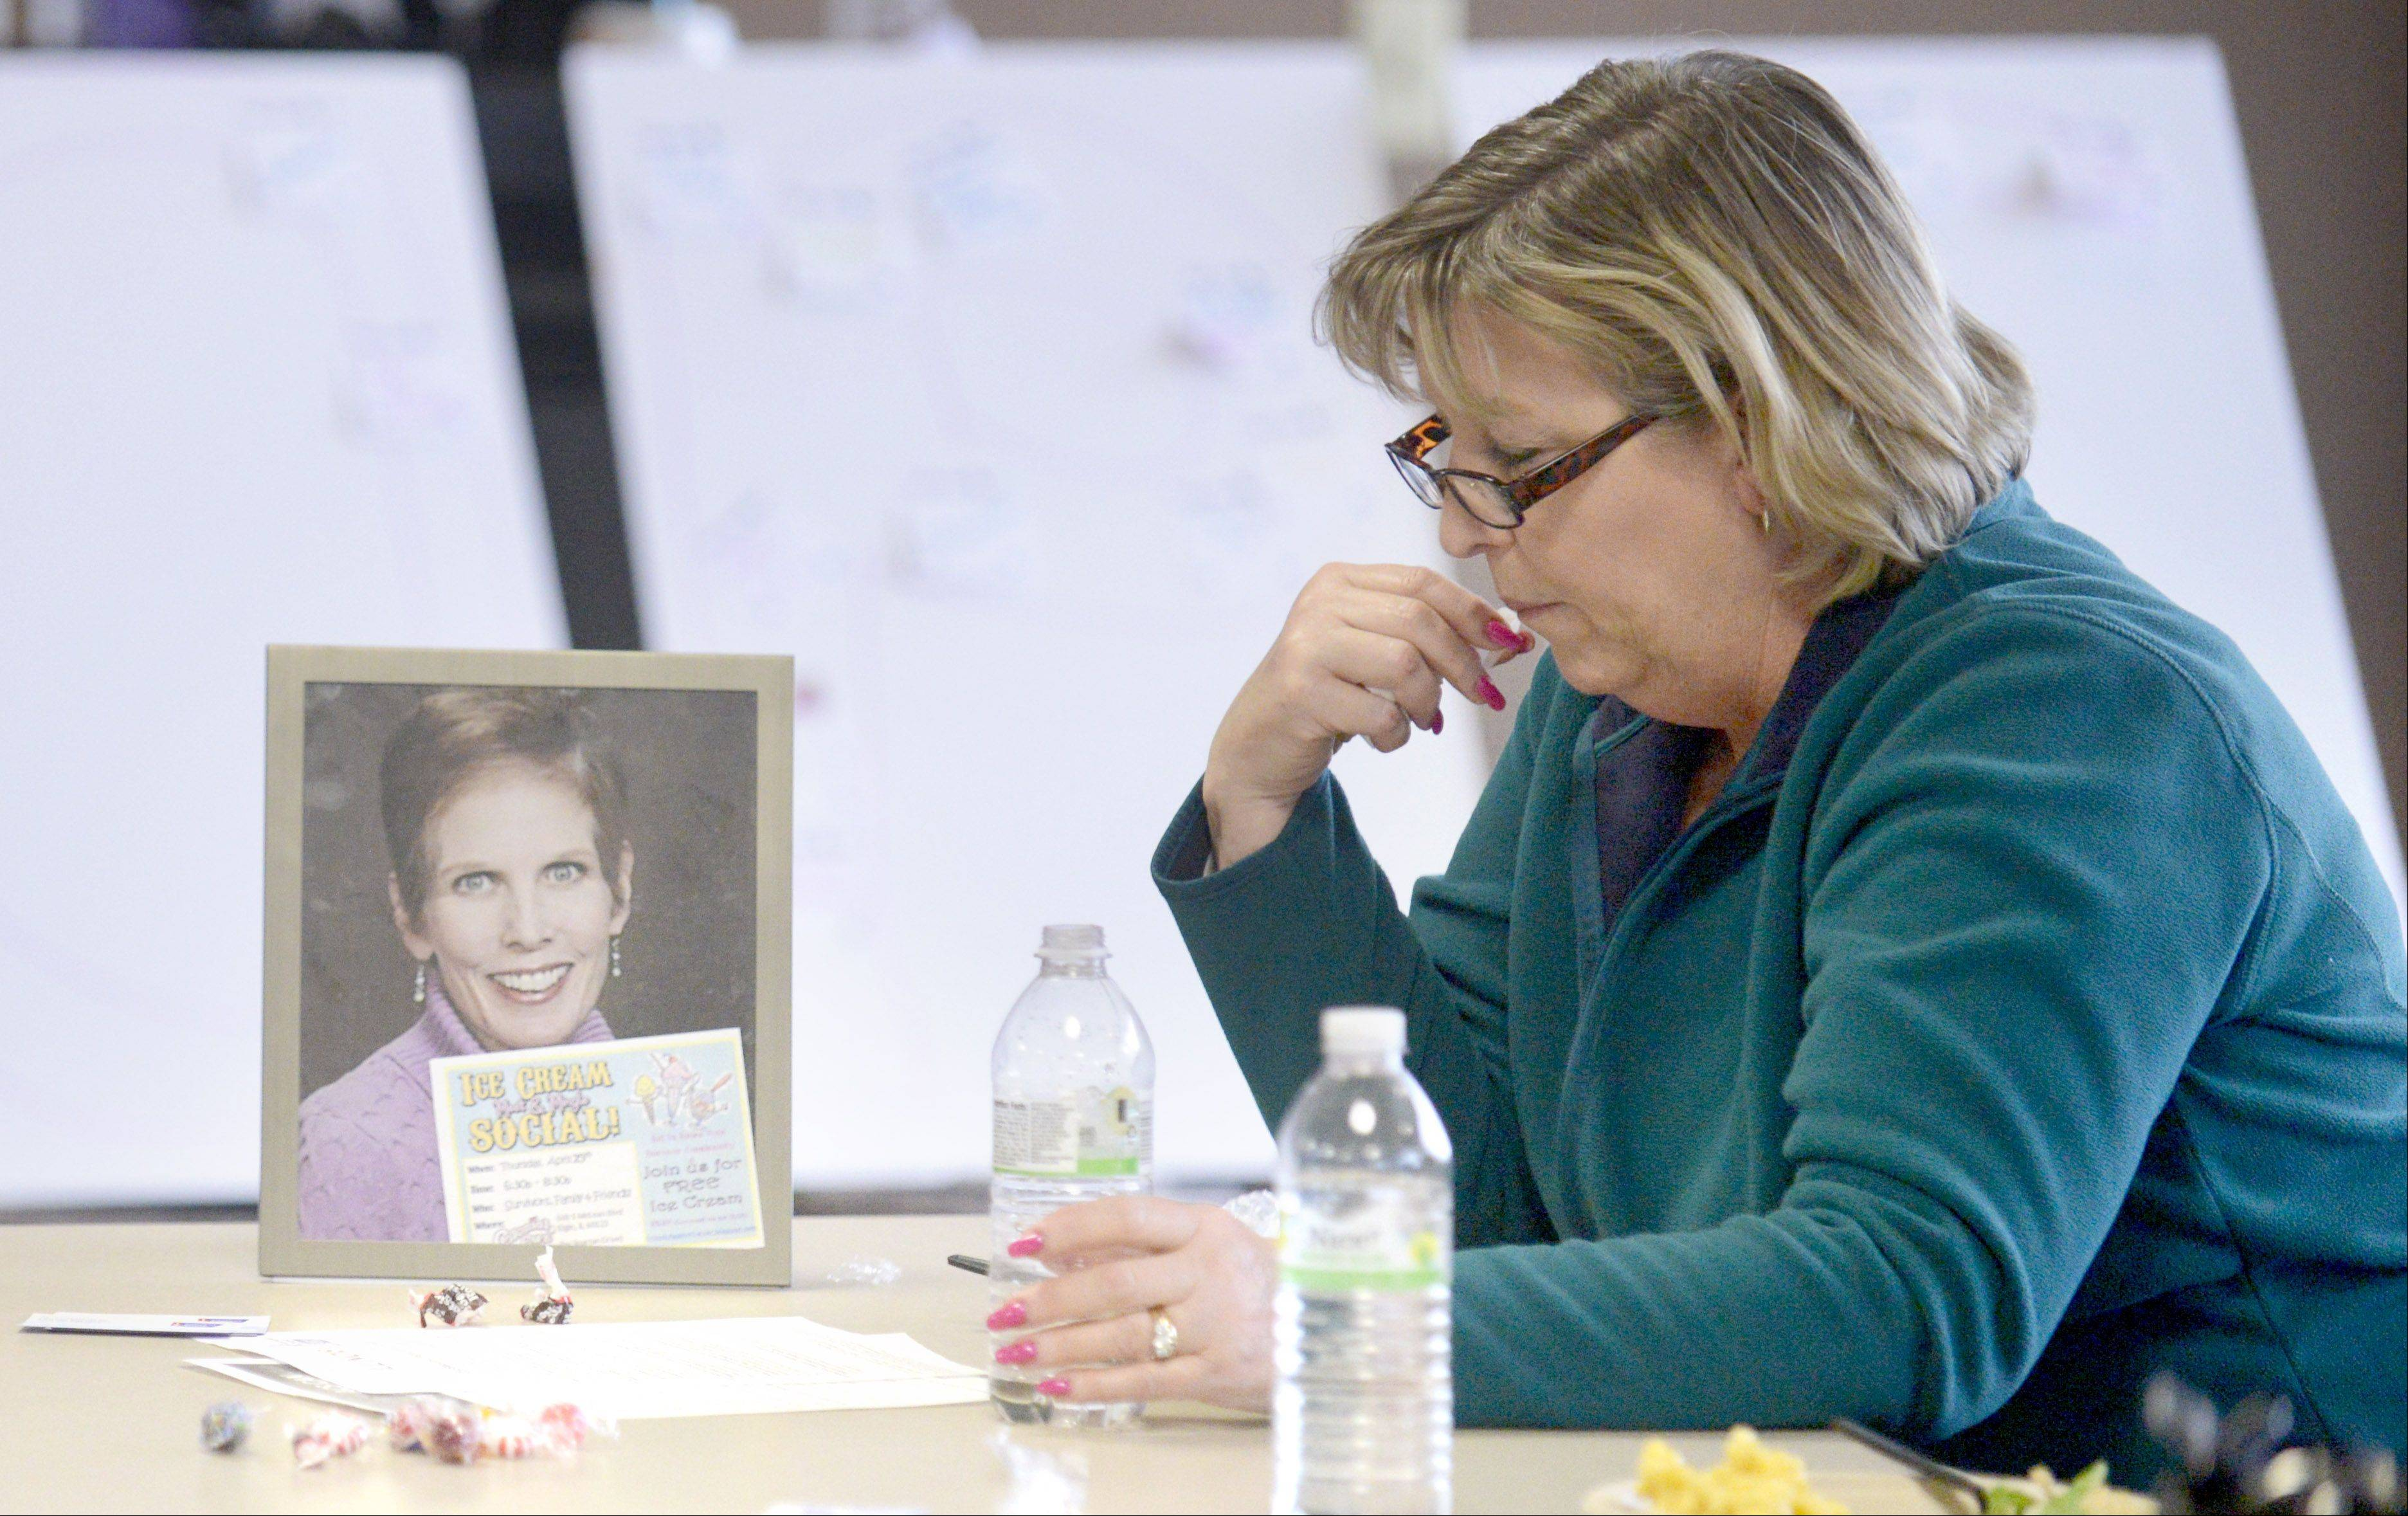 Debbie Weiman of Hampshire sits next to a portrait of her friend Margaret Hite of South Elgin during a kickoff event on Saturday for the American Cancer Society Relay For Life at Elgin Community College. The two are co-captains of a Relay For Life team they called �The Big Girl Panty Club.� Hite is a cancer patient. The relay event is June 14-15.